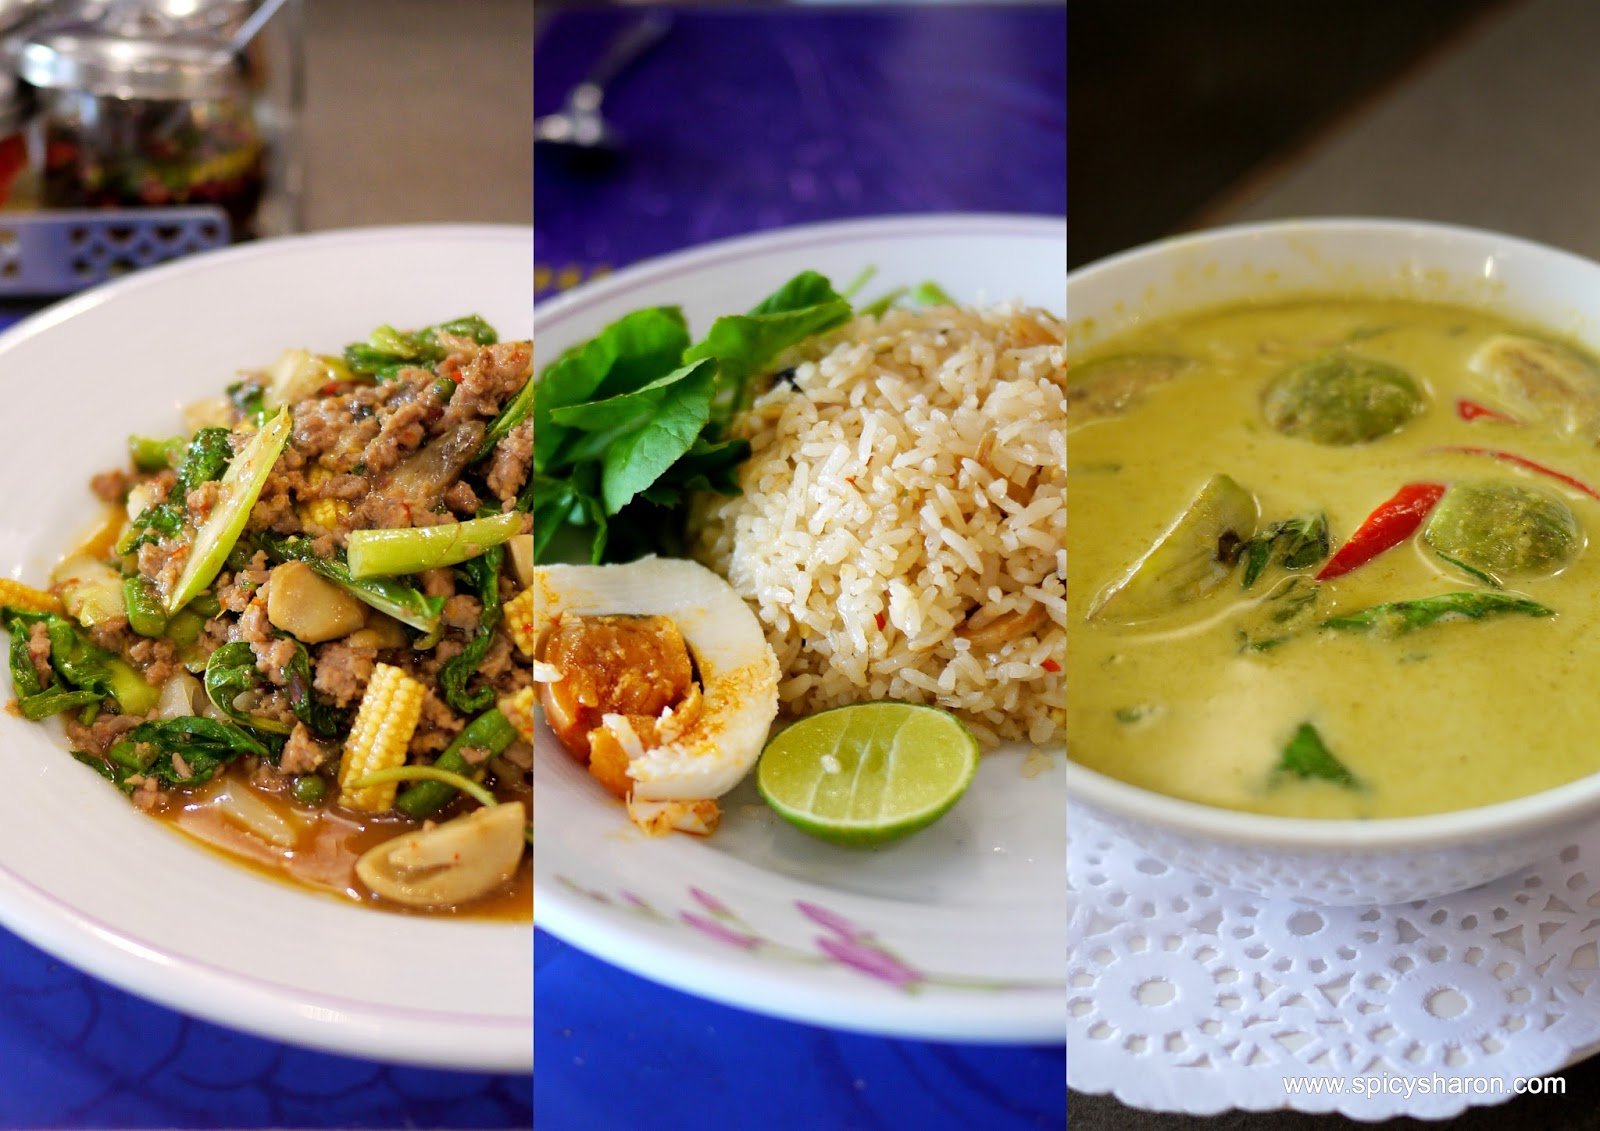 Travelogue things to do in phuket thailand spicy sharon for Air thai cuisine